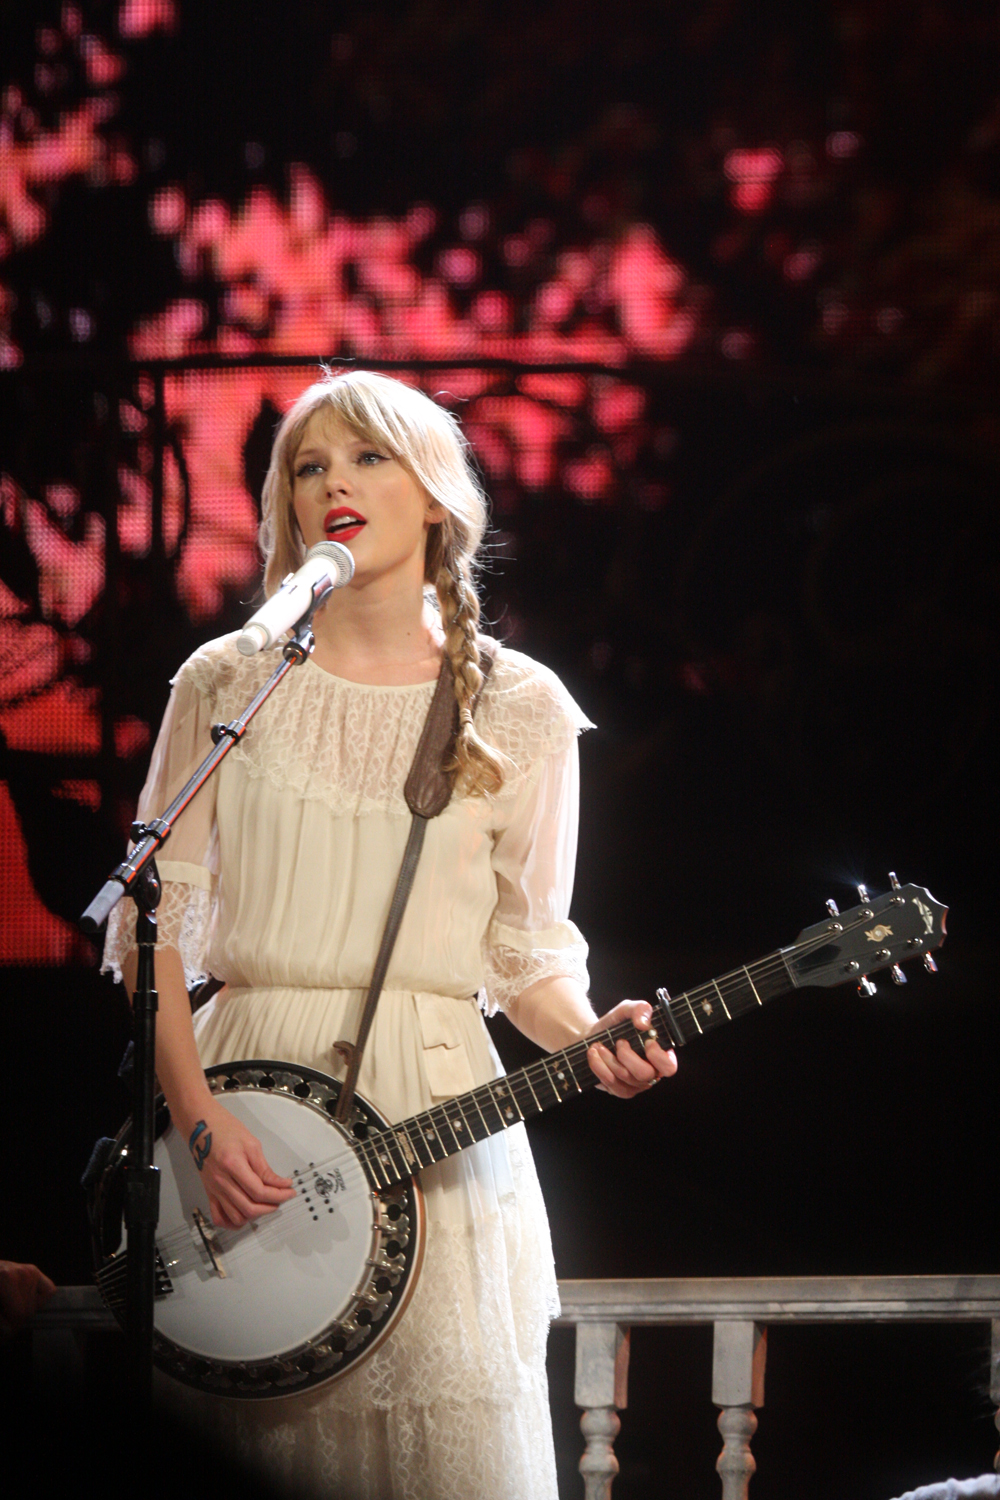 Taylor Swift Speak Now Tour Sold Out images